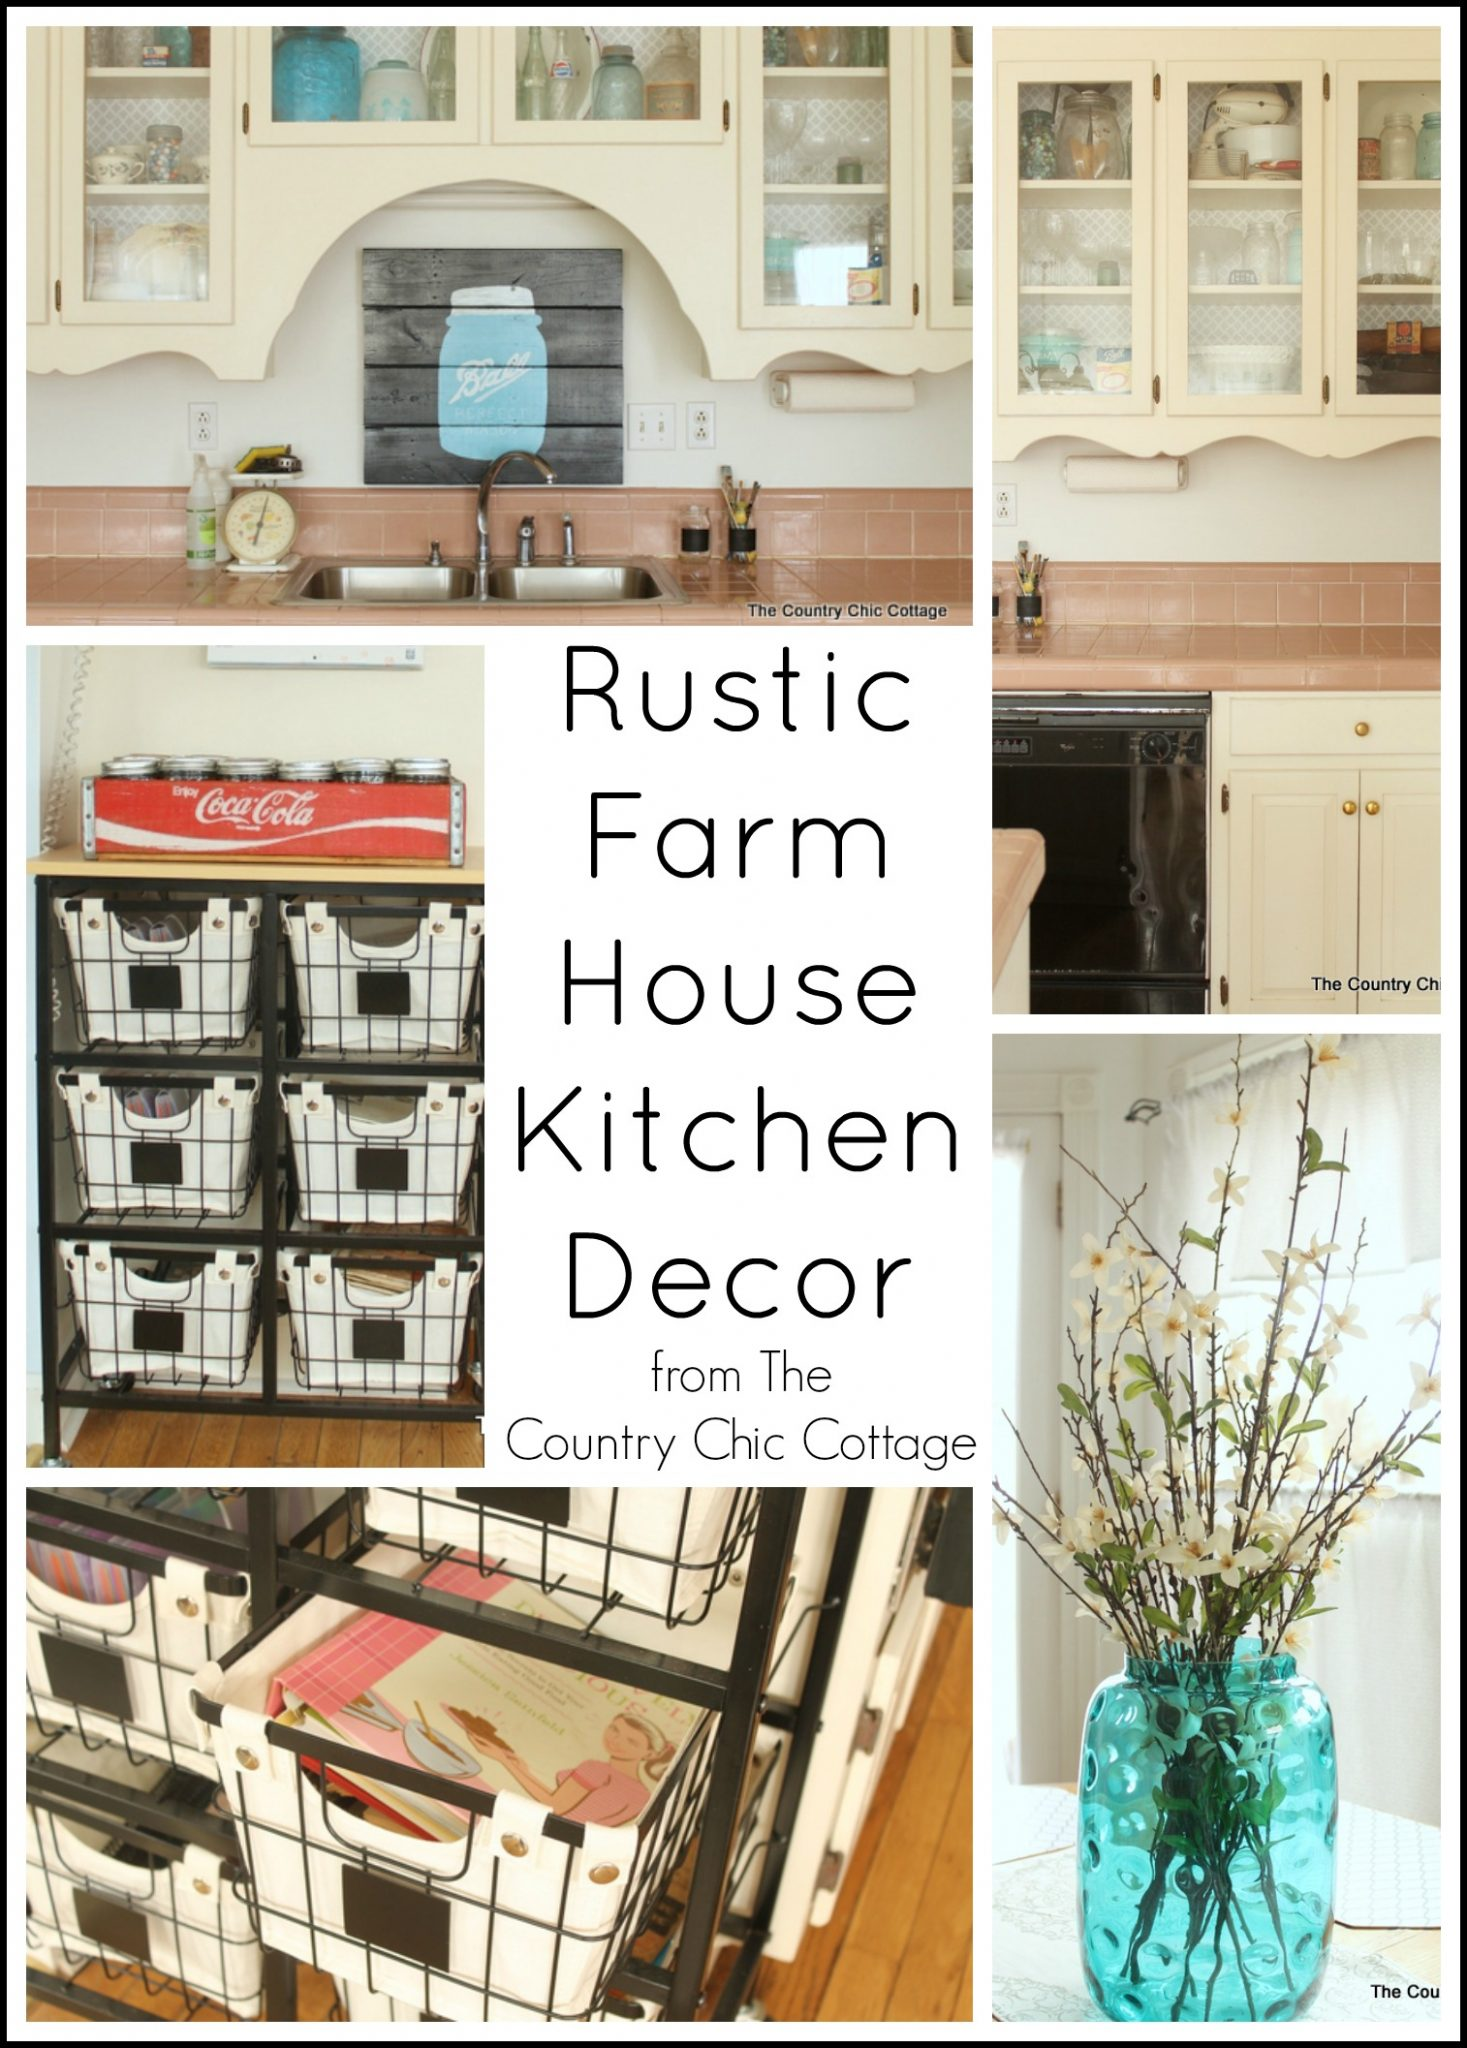 Farm style chic decor ideas